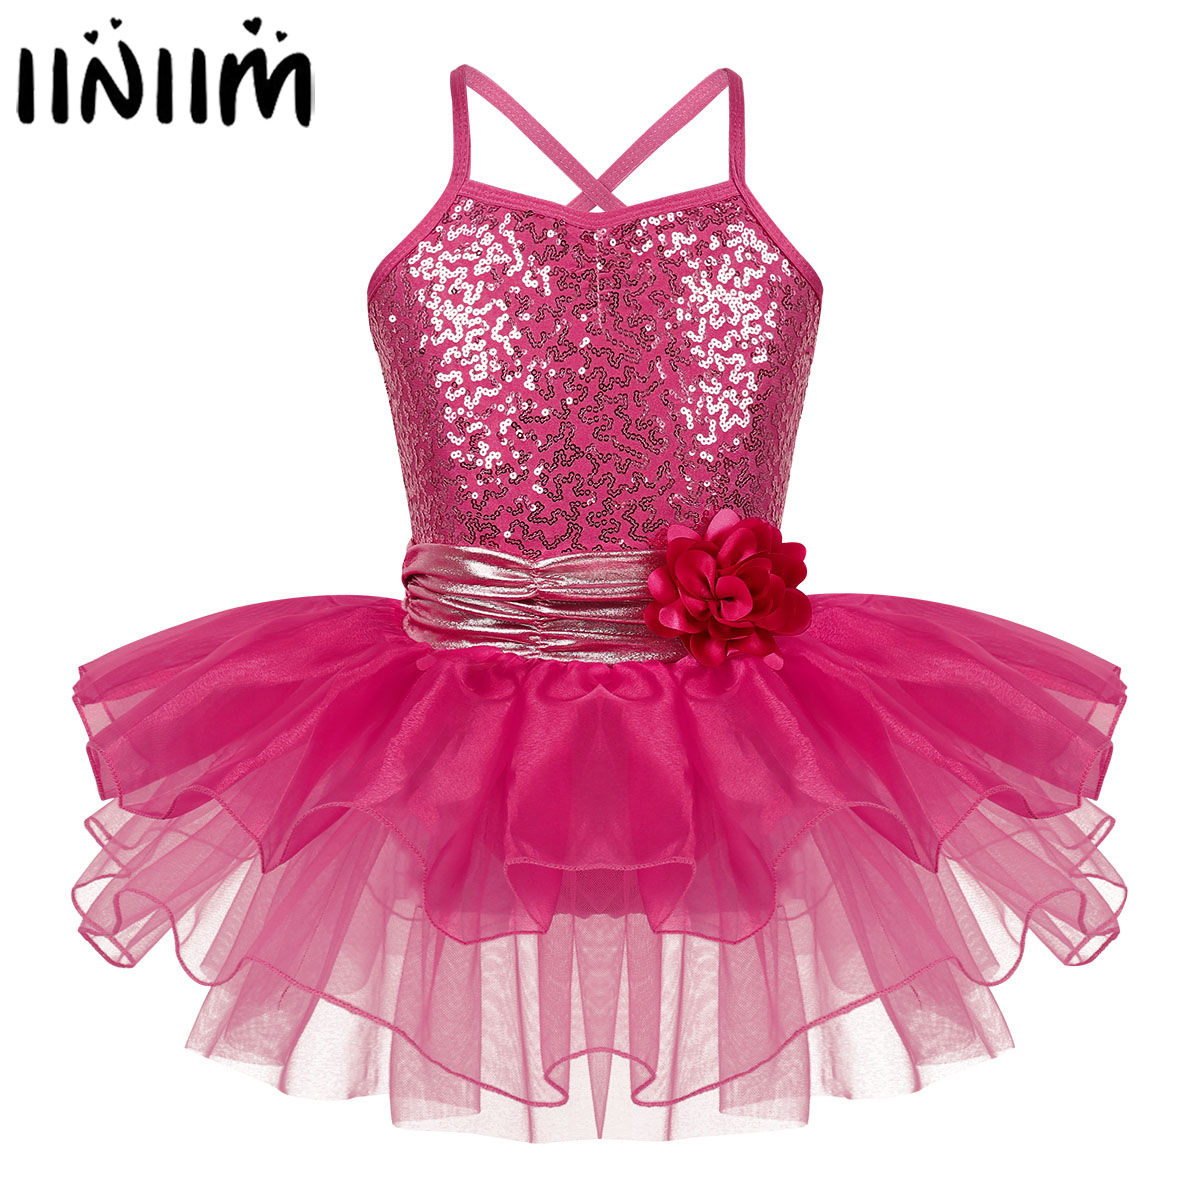 Iiniim Kids Girls Flower Strap Athletic Lyrical Dance Costumes Parties Dancewear Ballerina Ballet Gymnastics Leotard Tutu Dress